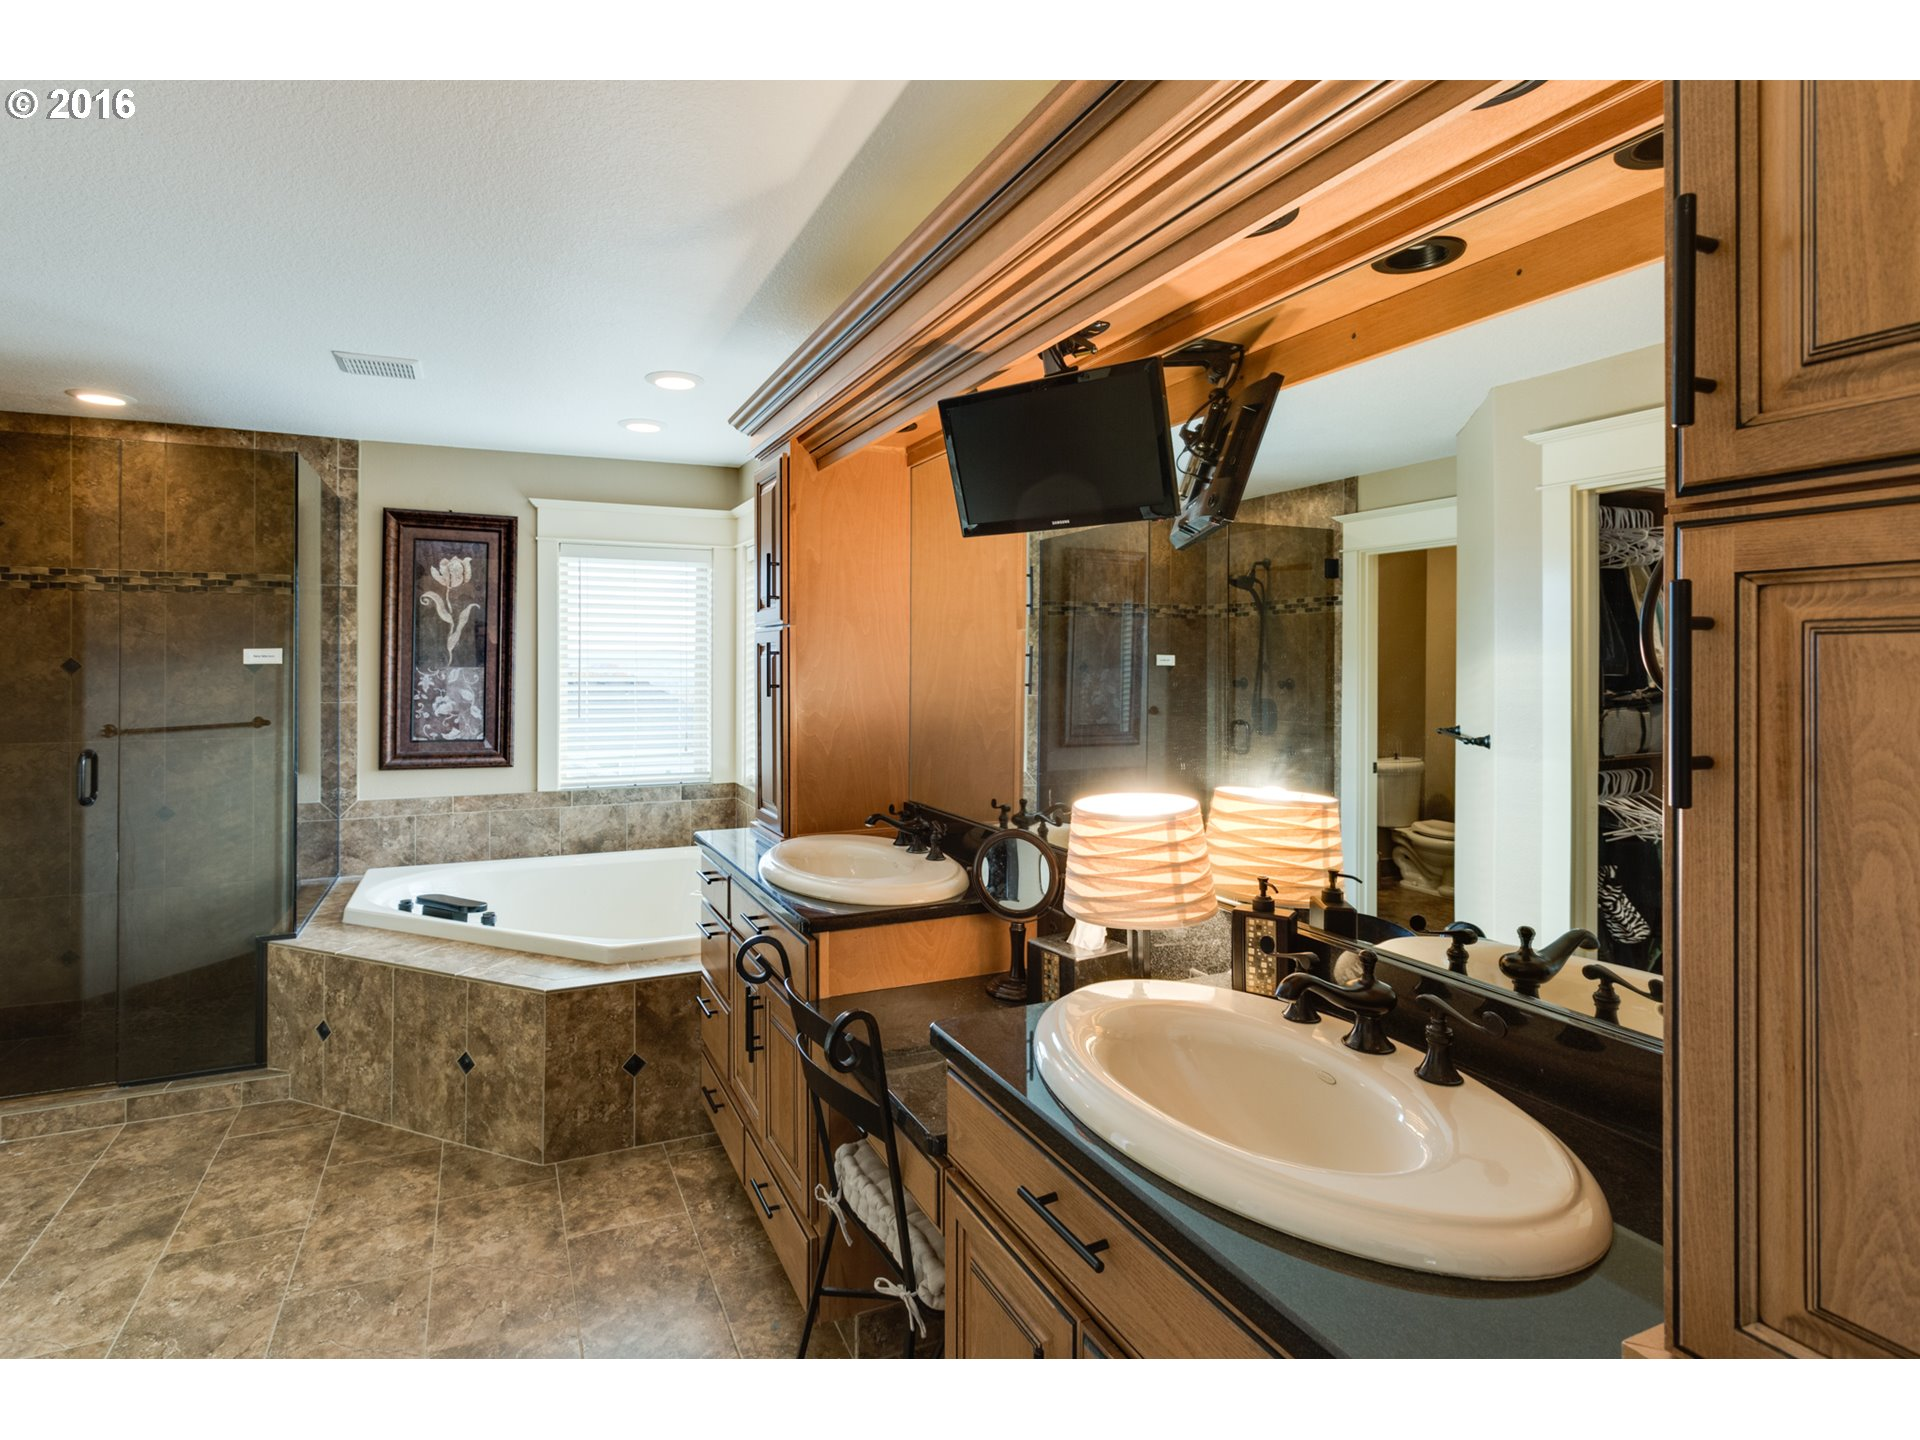 MASTER BATHROOM MATT MORRIS 360-773-7333